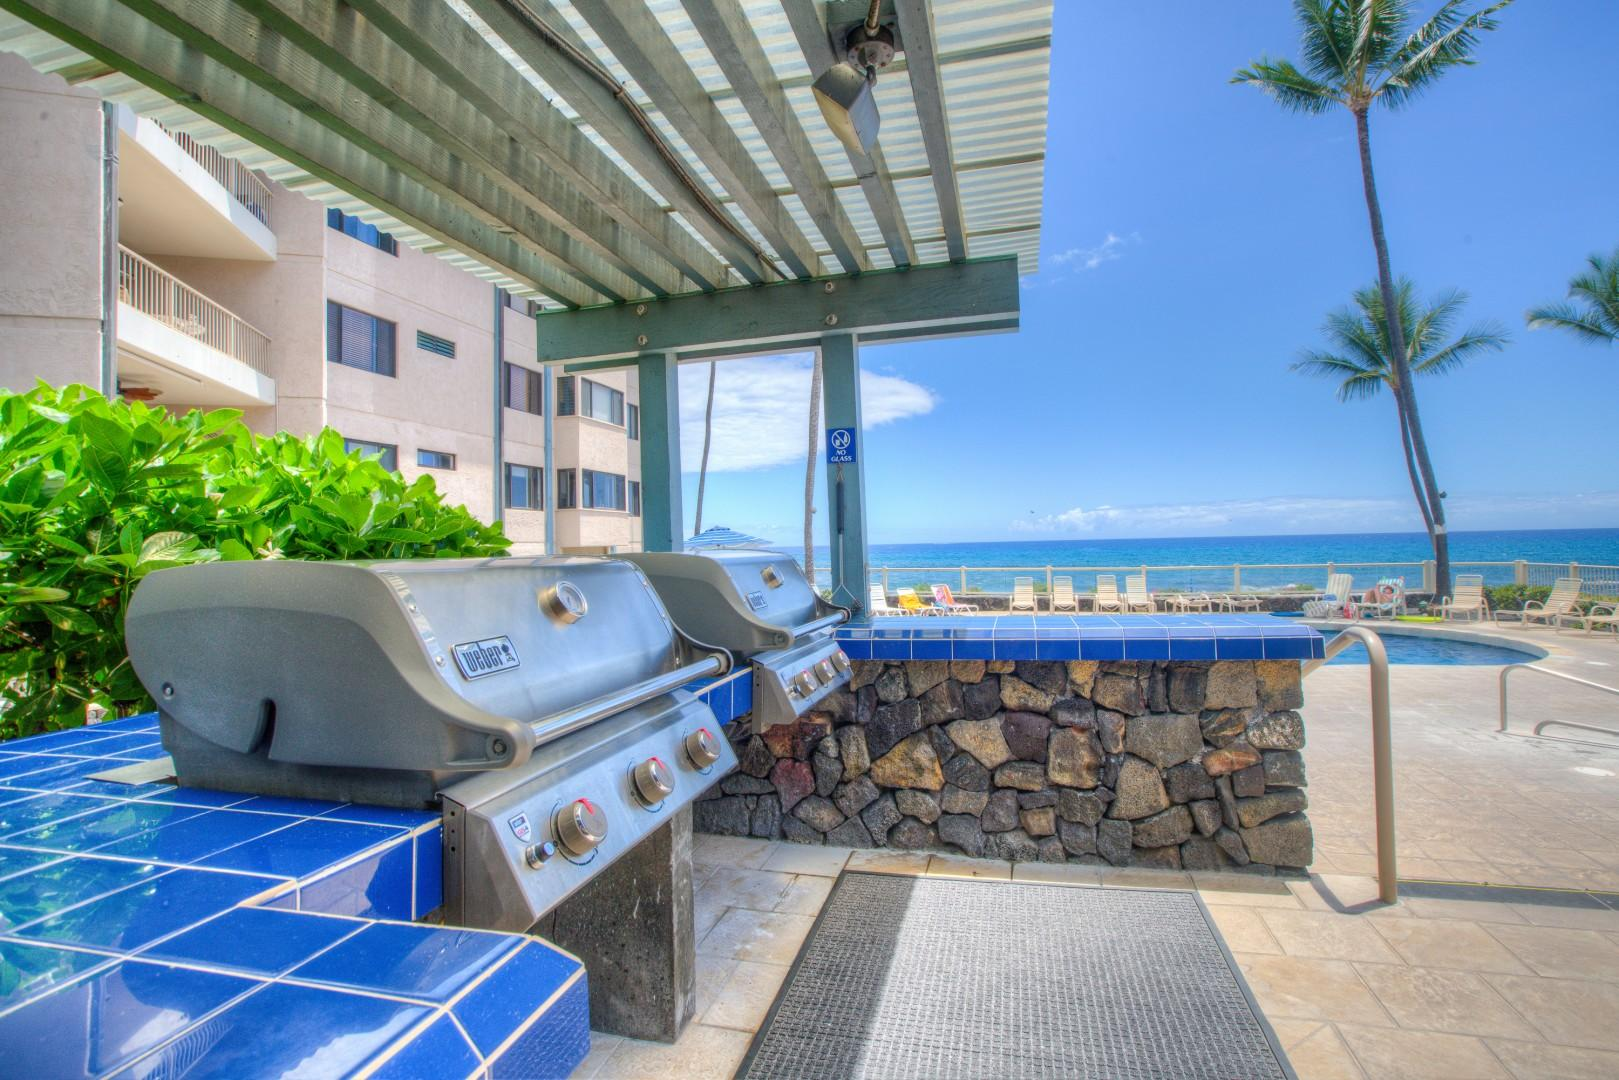 Barbecue Facilities and Pavilion located adjacent to the Oceanfront Pool.